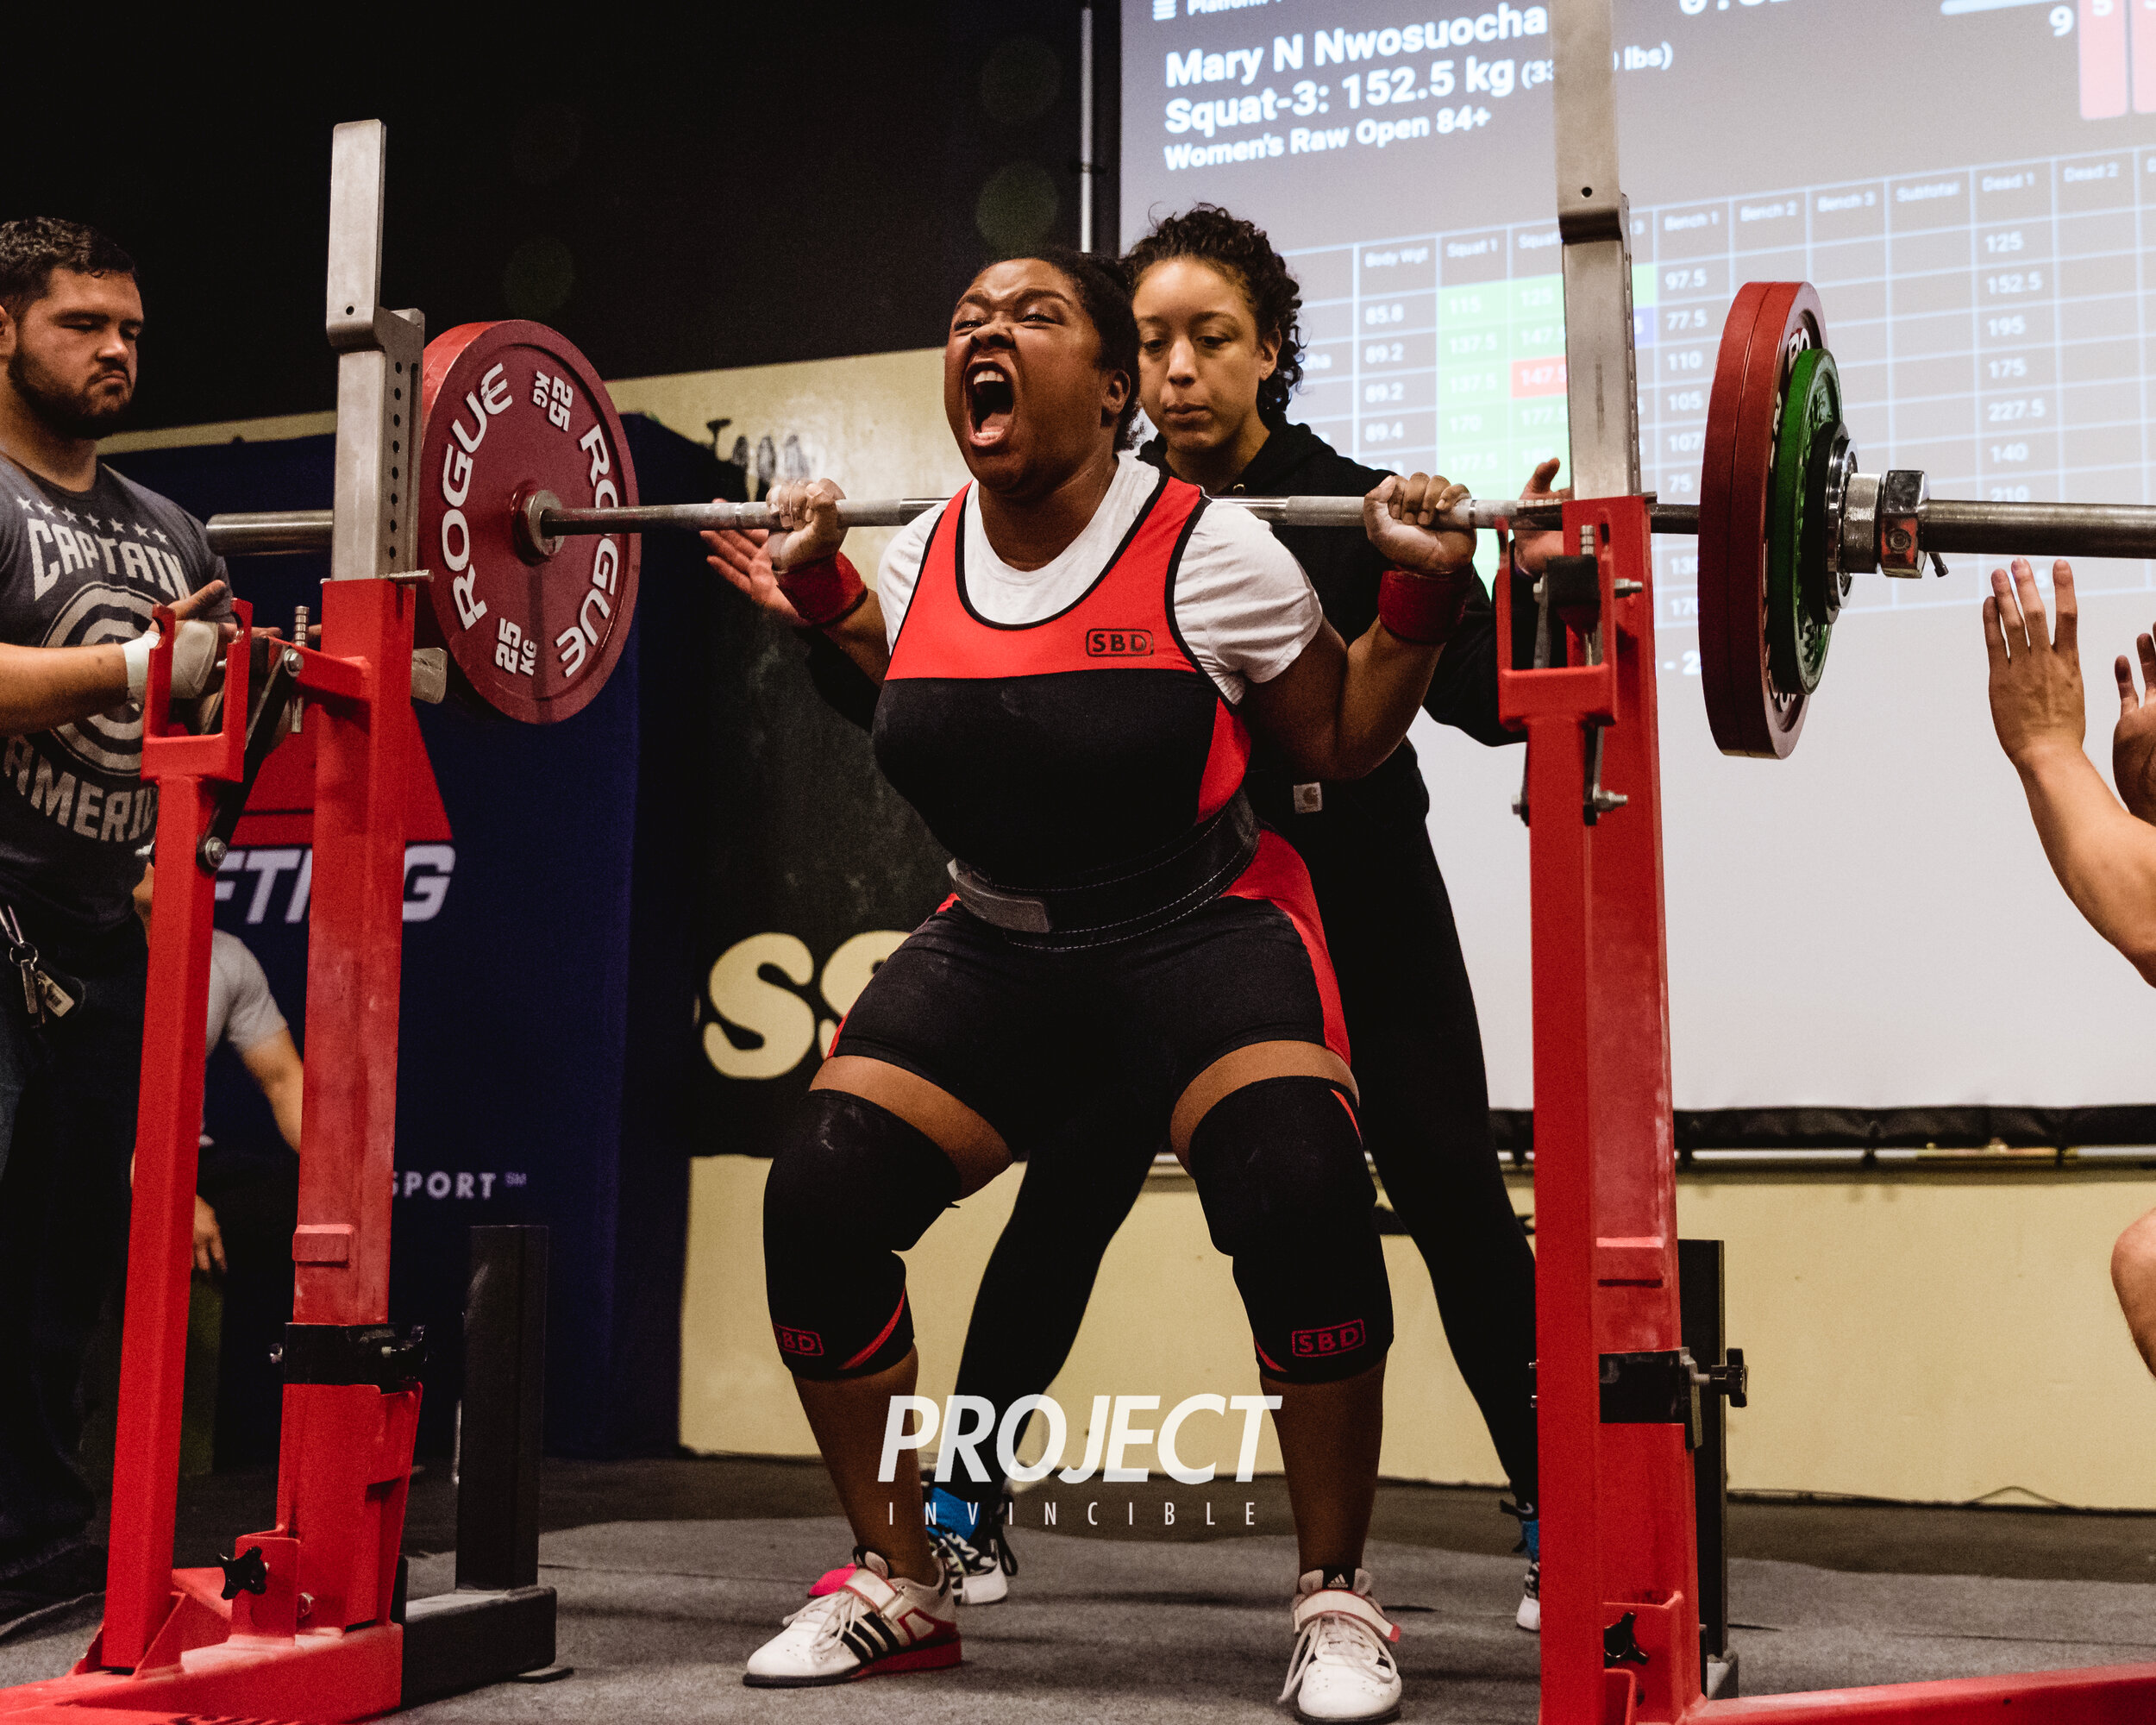 POWERLIFTING - Powerlifting is the sport dedicated to the pursuit of strength.